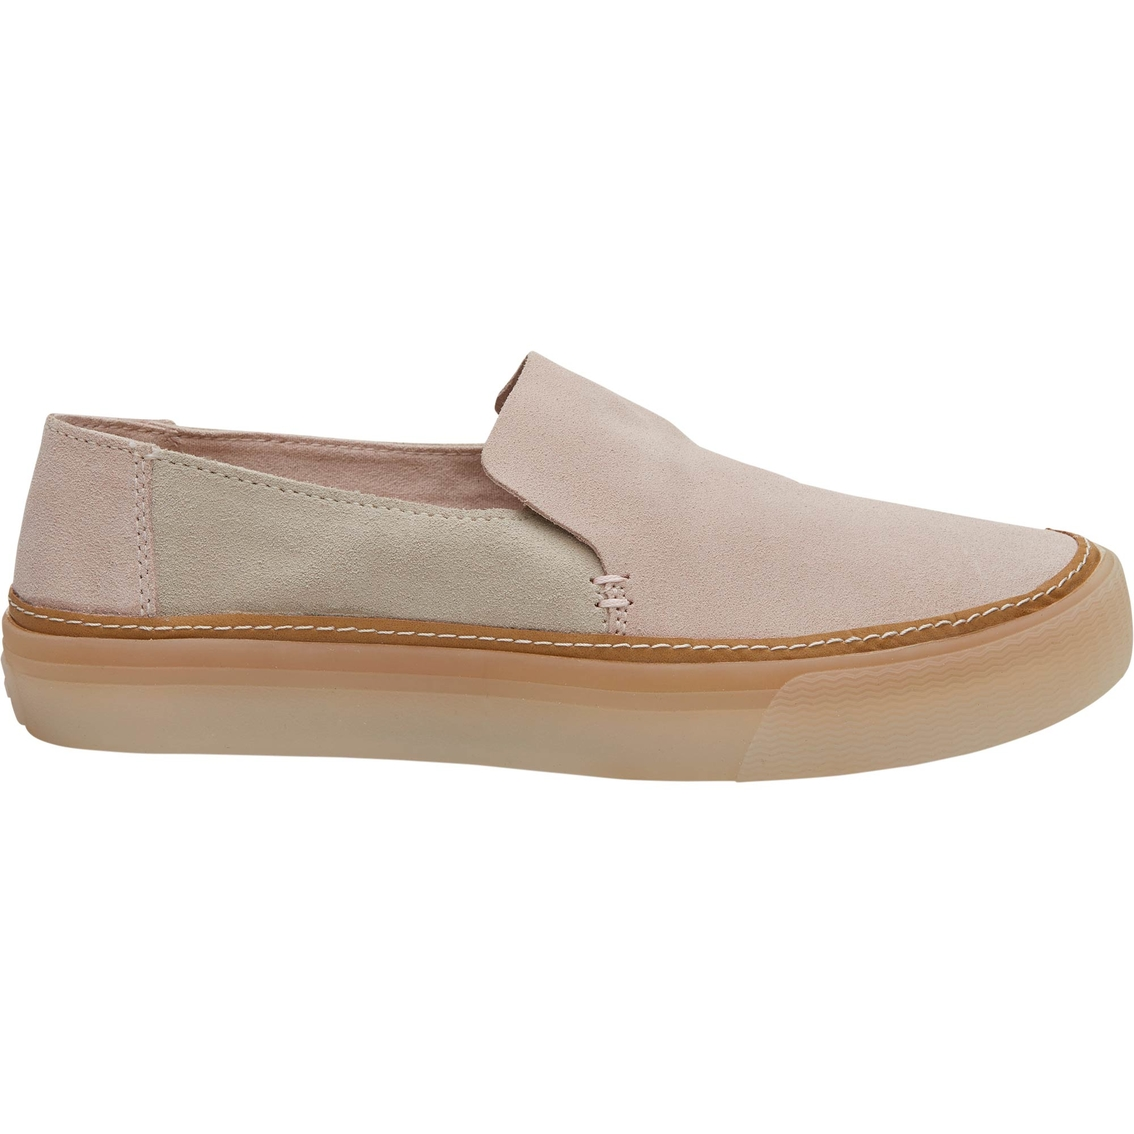 Toms Suede Sunset Slip On Sneakers